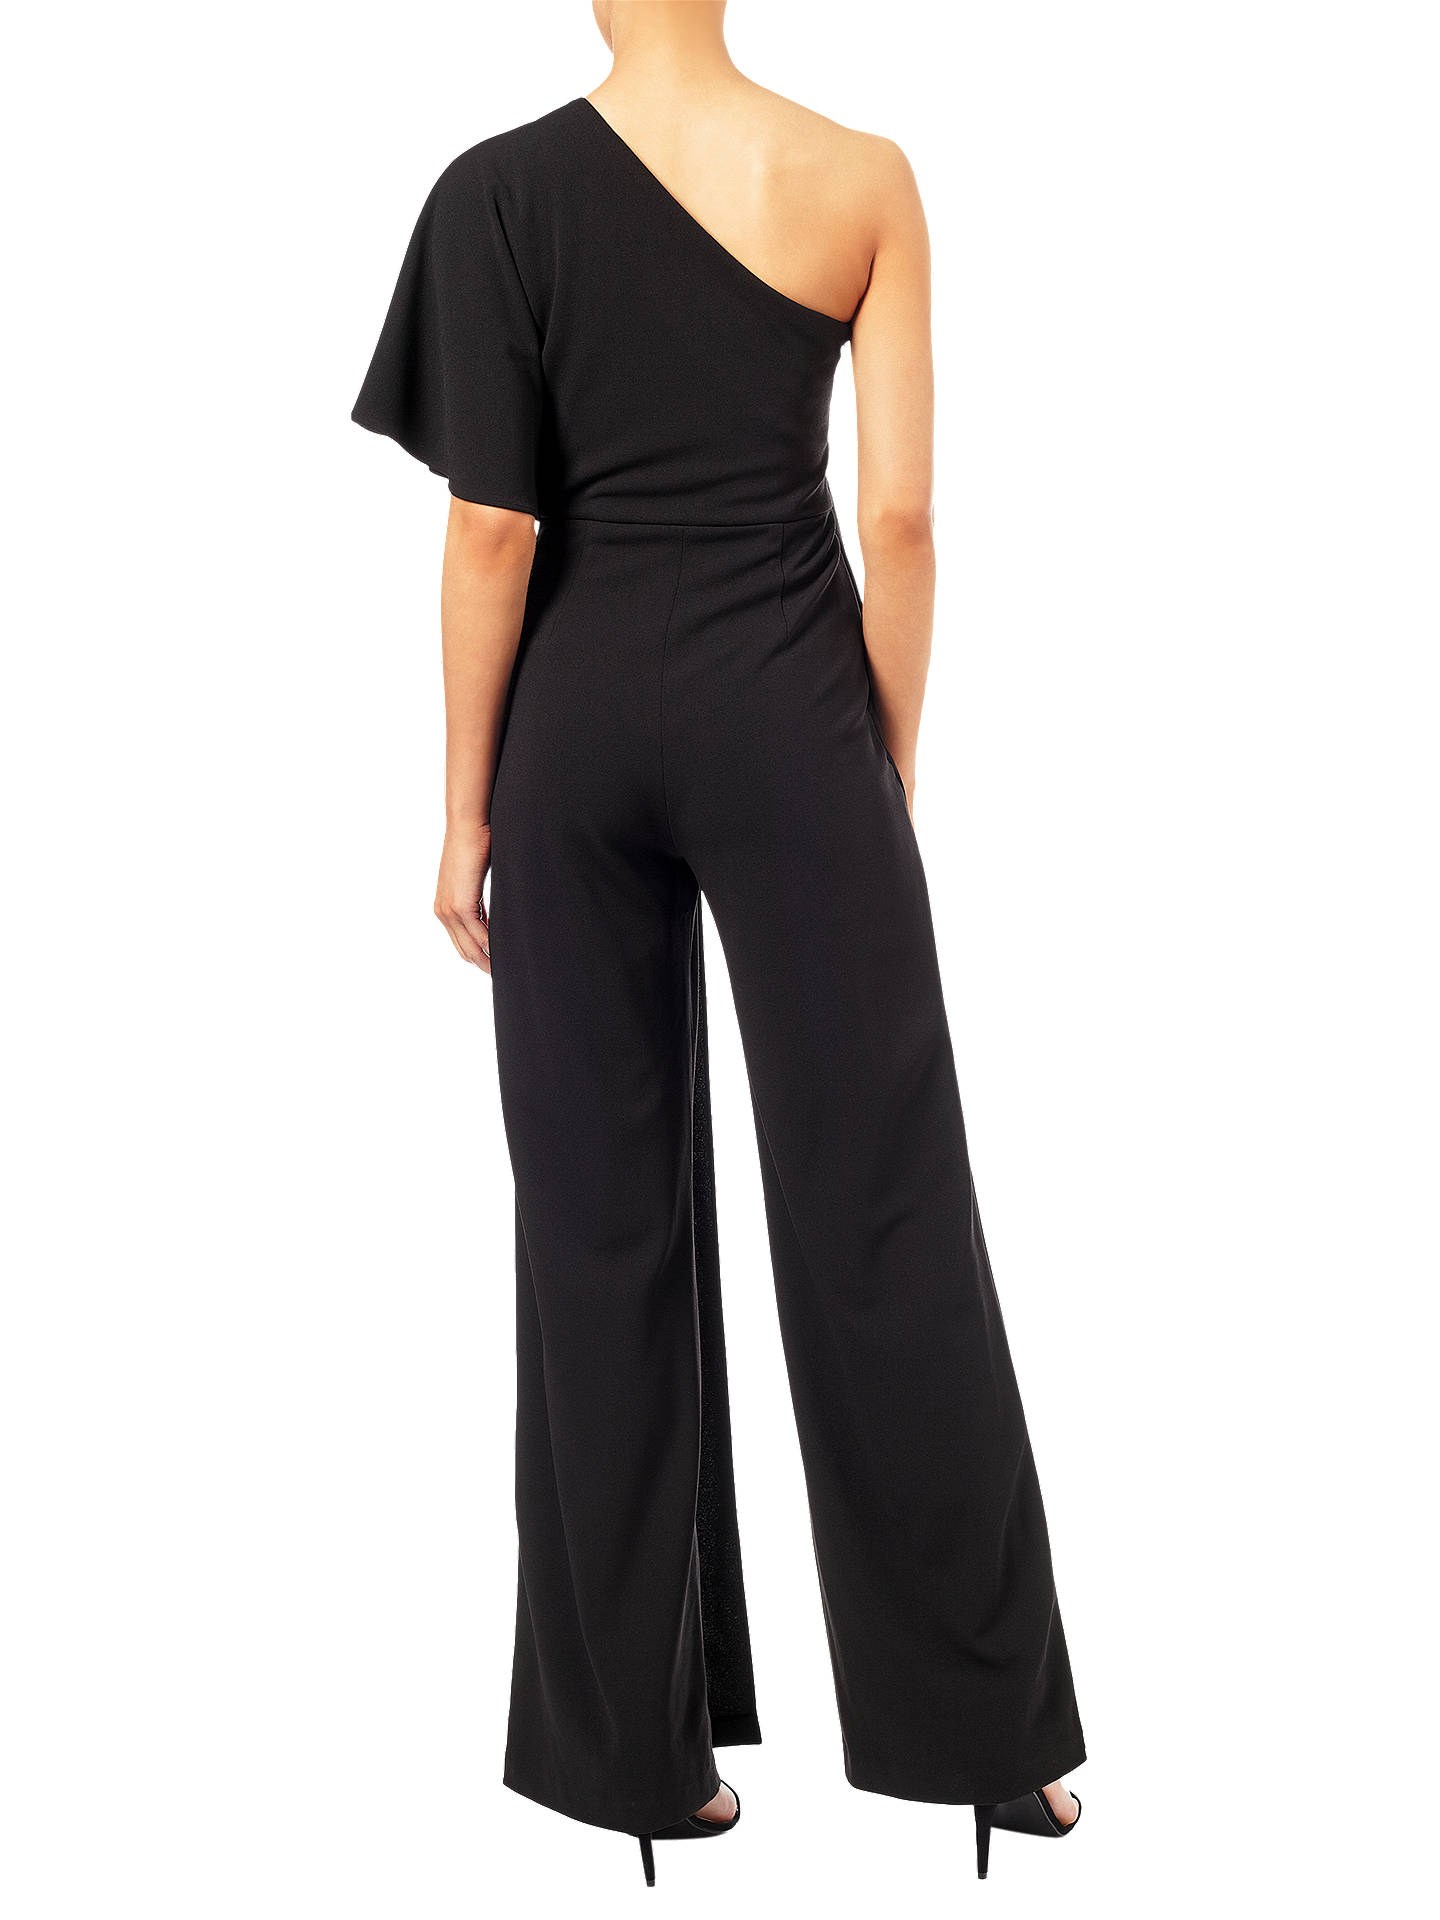 BuyAdrianna Papell One Shoulder Jumpsuit, Black, 6 Online at johnlewis.com